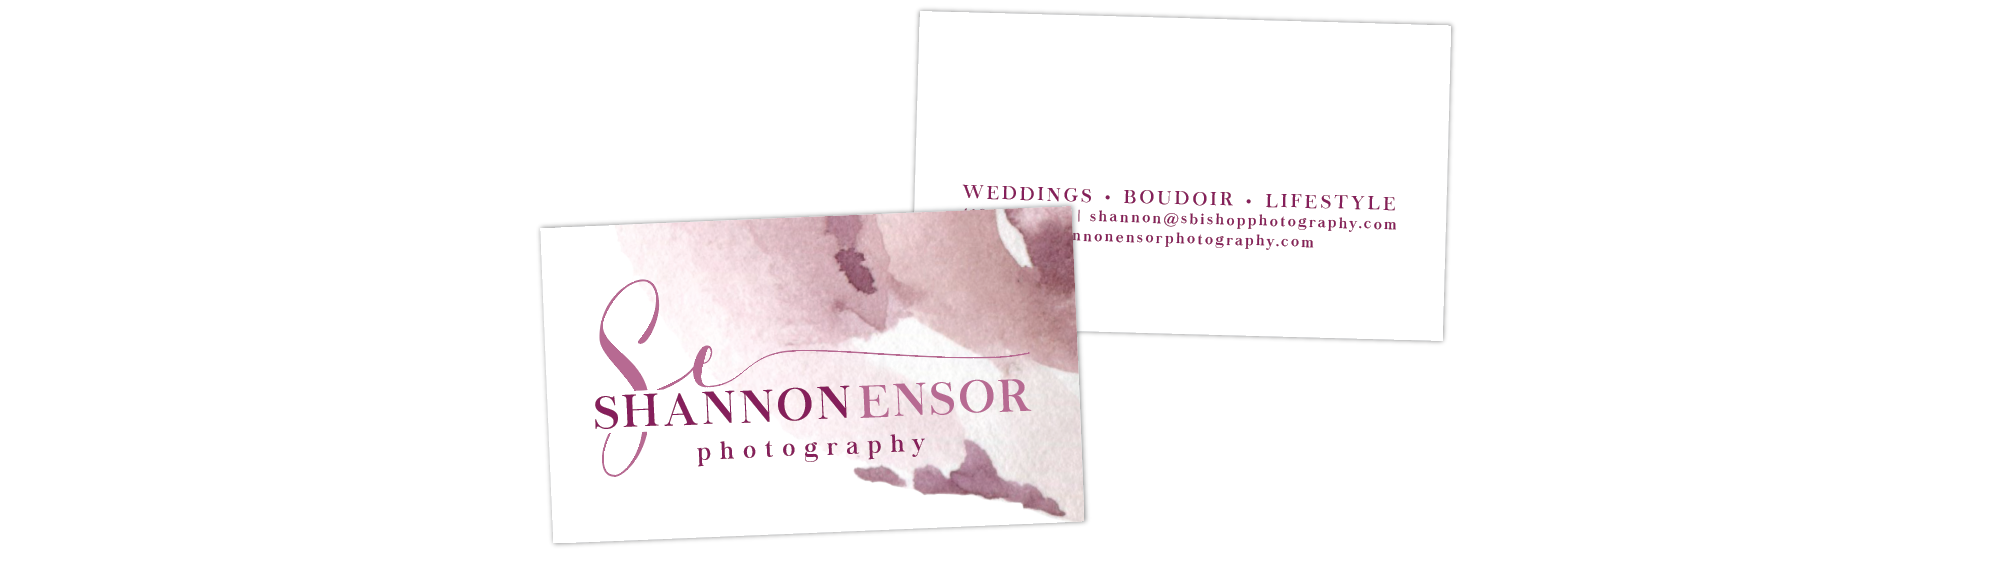 Business Card_blog.png